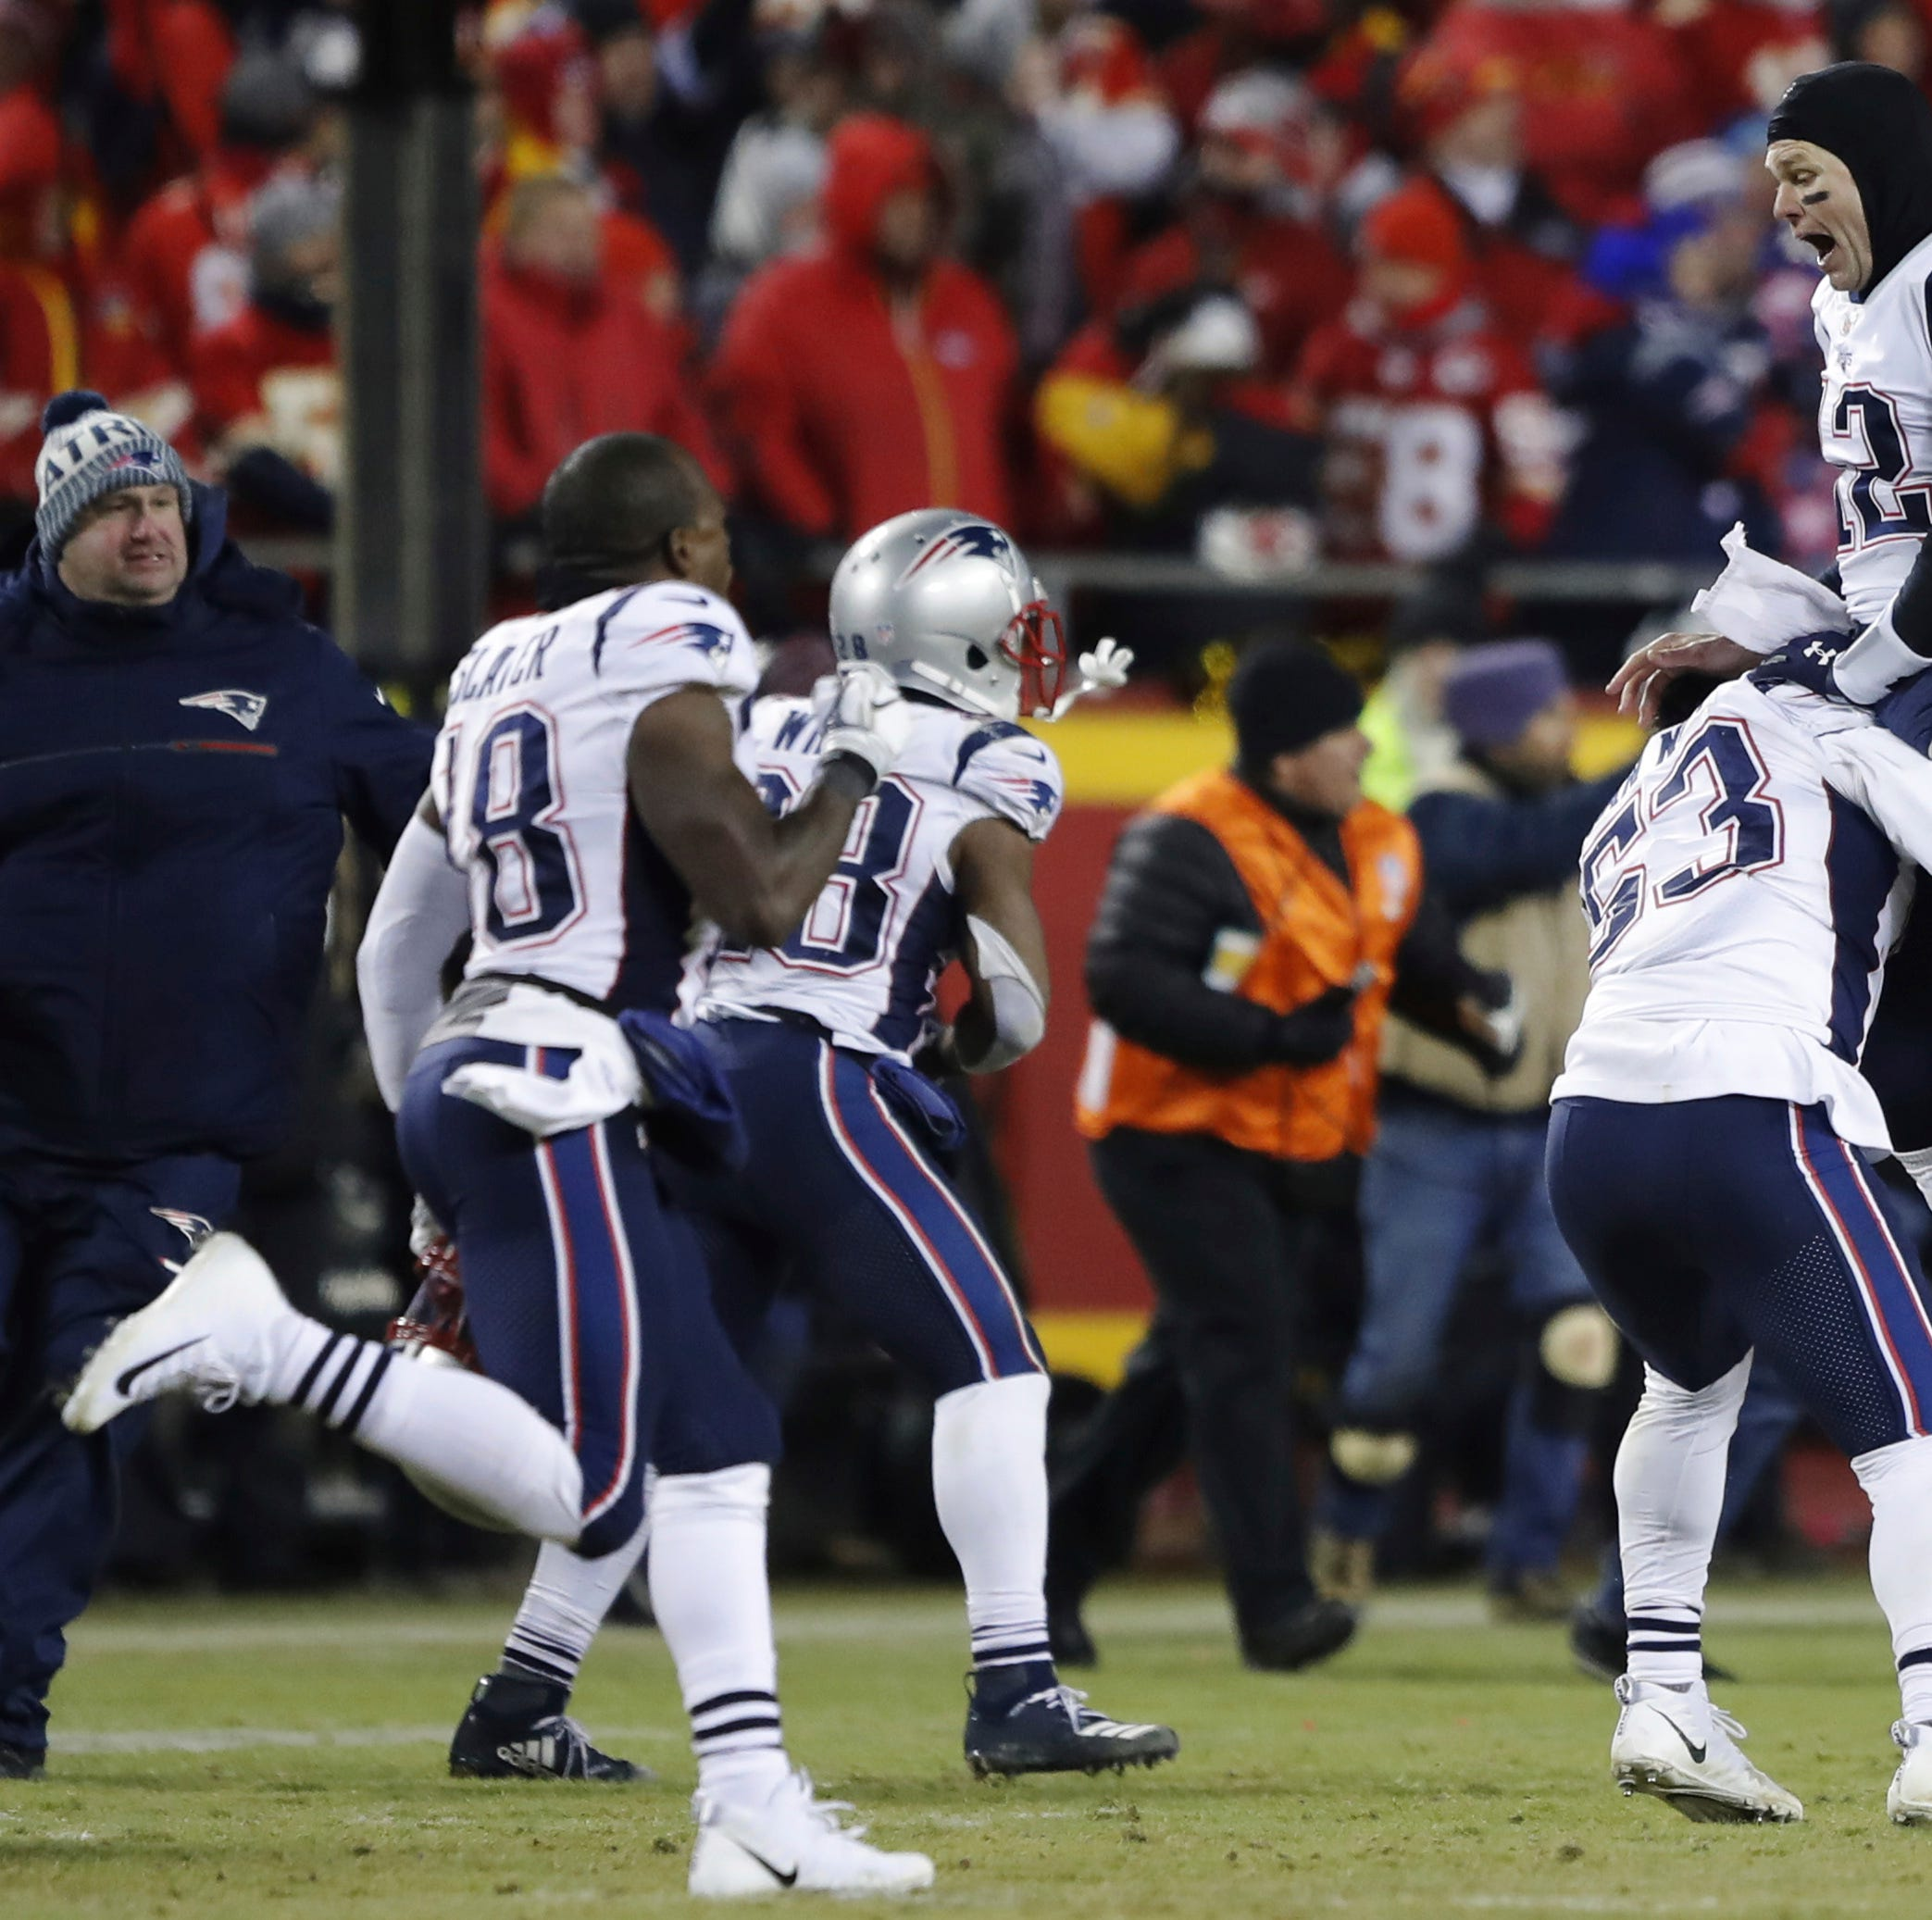 Patriots beat Chiefs in OT, make 3rd straight Super Bowl